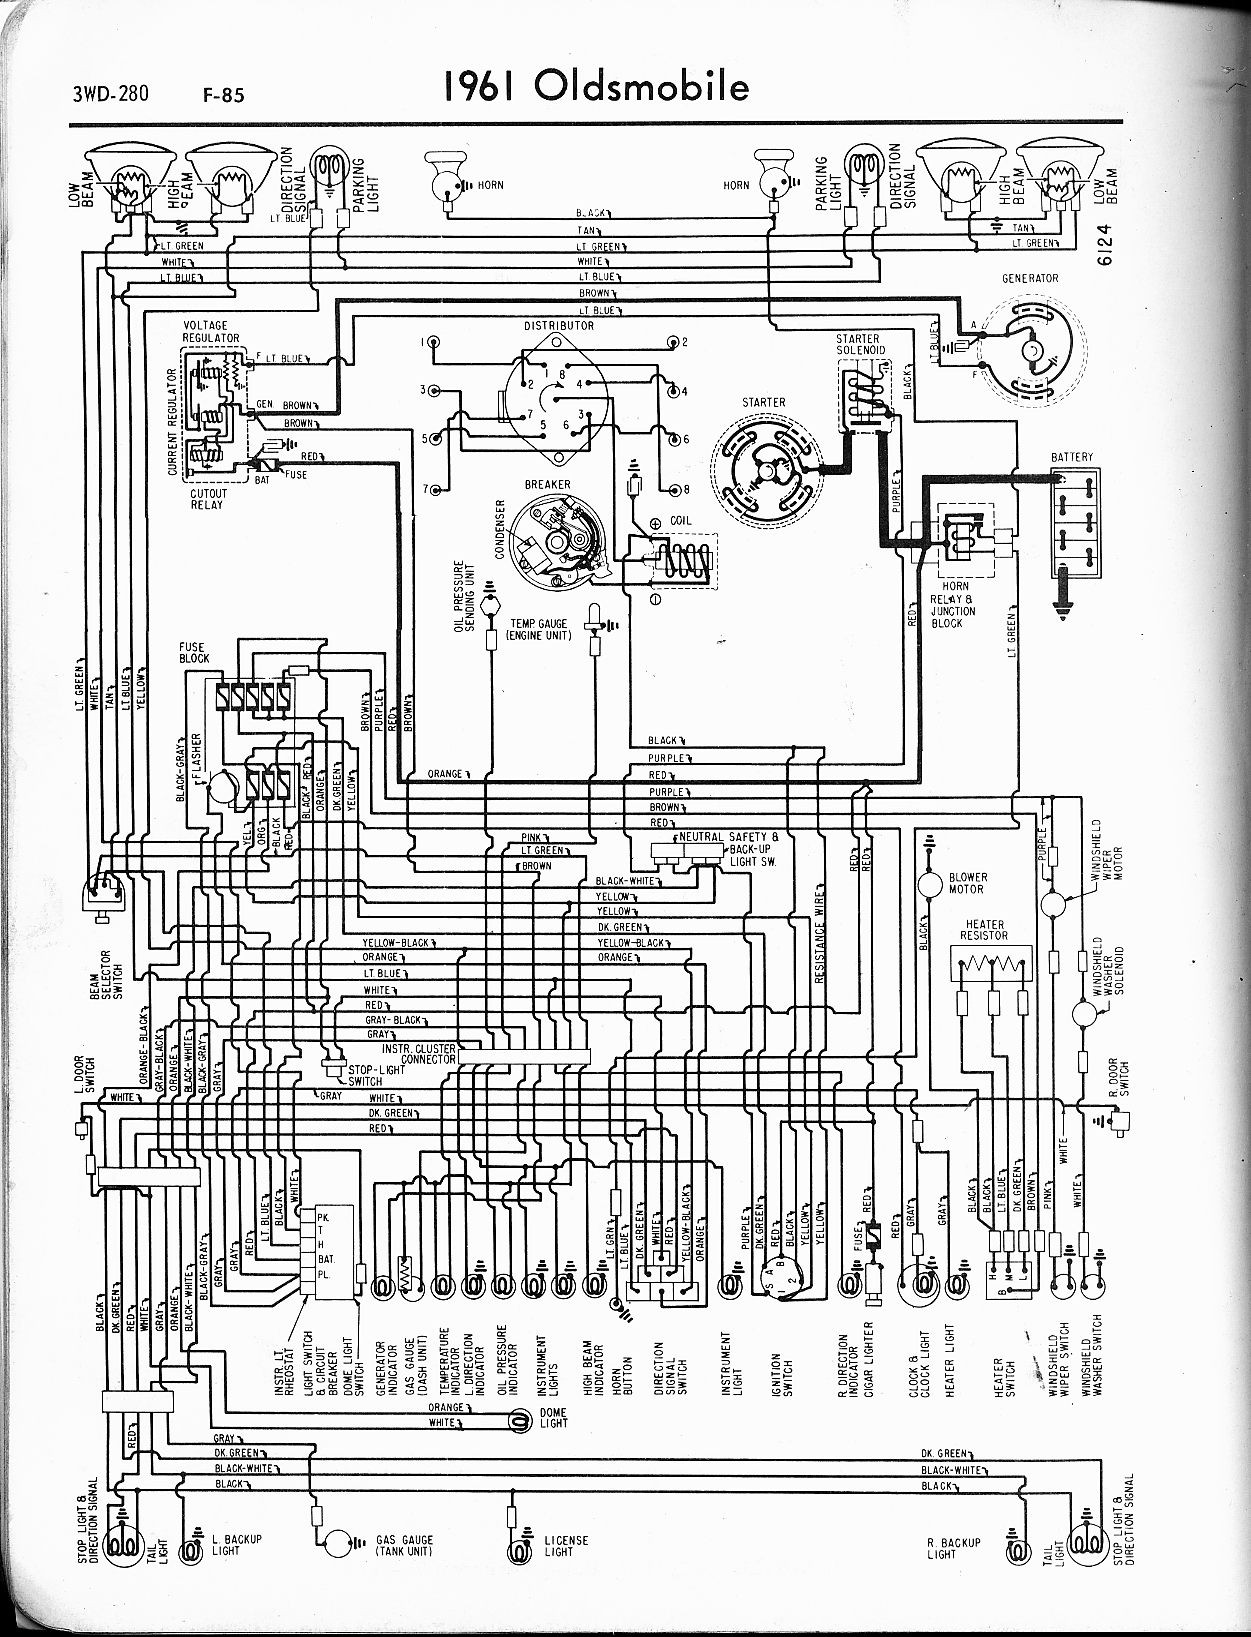 Oldsmobile Electrical Diagram Great Installation Of Wiring 1967 Pontiac Diagrams Automotive Old Car Simple Rh 32 Studio011 De Circuit